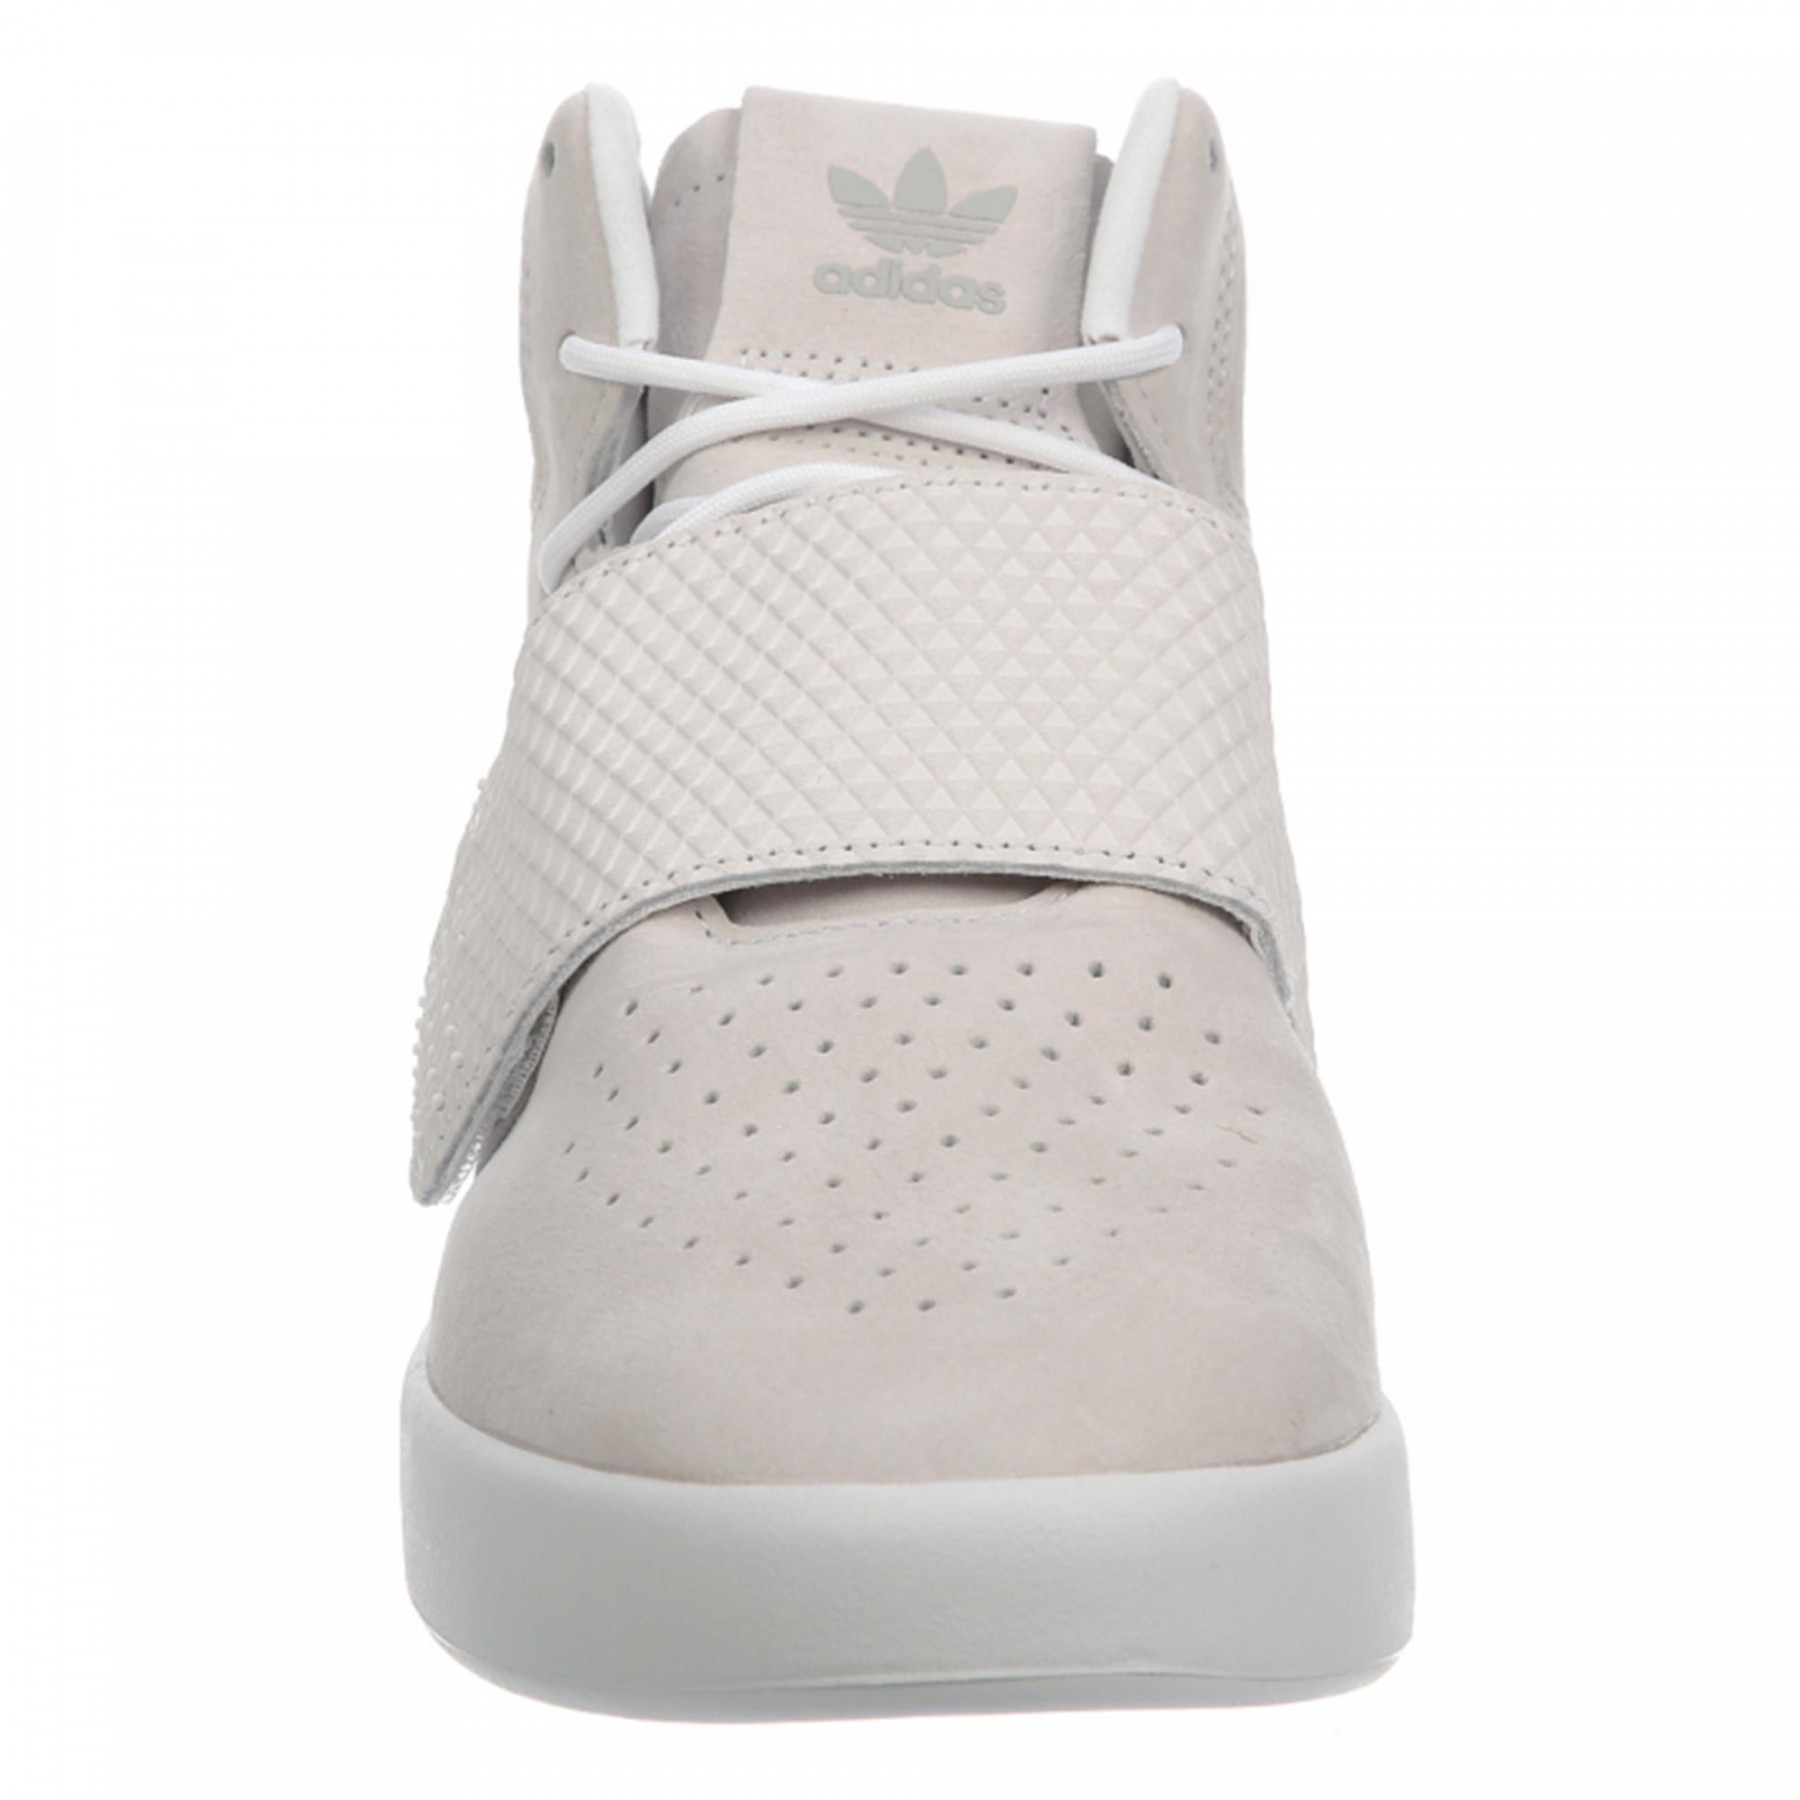 d6d3cf0165 Tubular Invader Strap Chaussure Homme ADIDAS BLANC pas cher ...